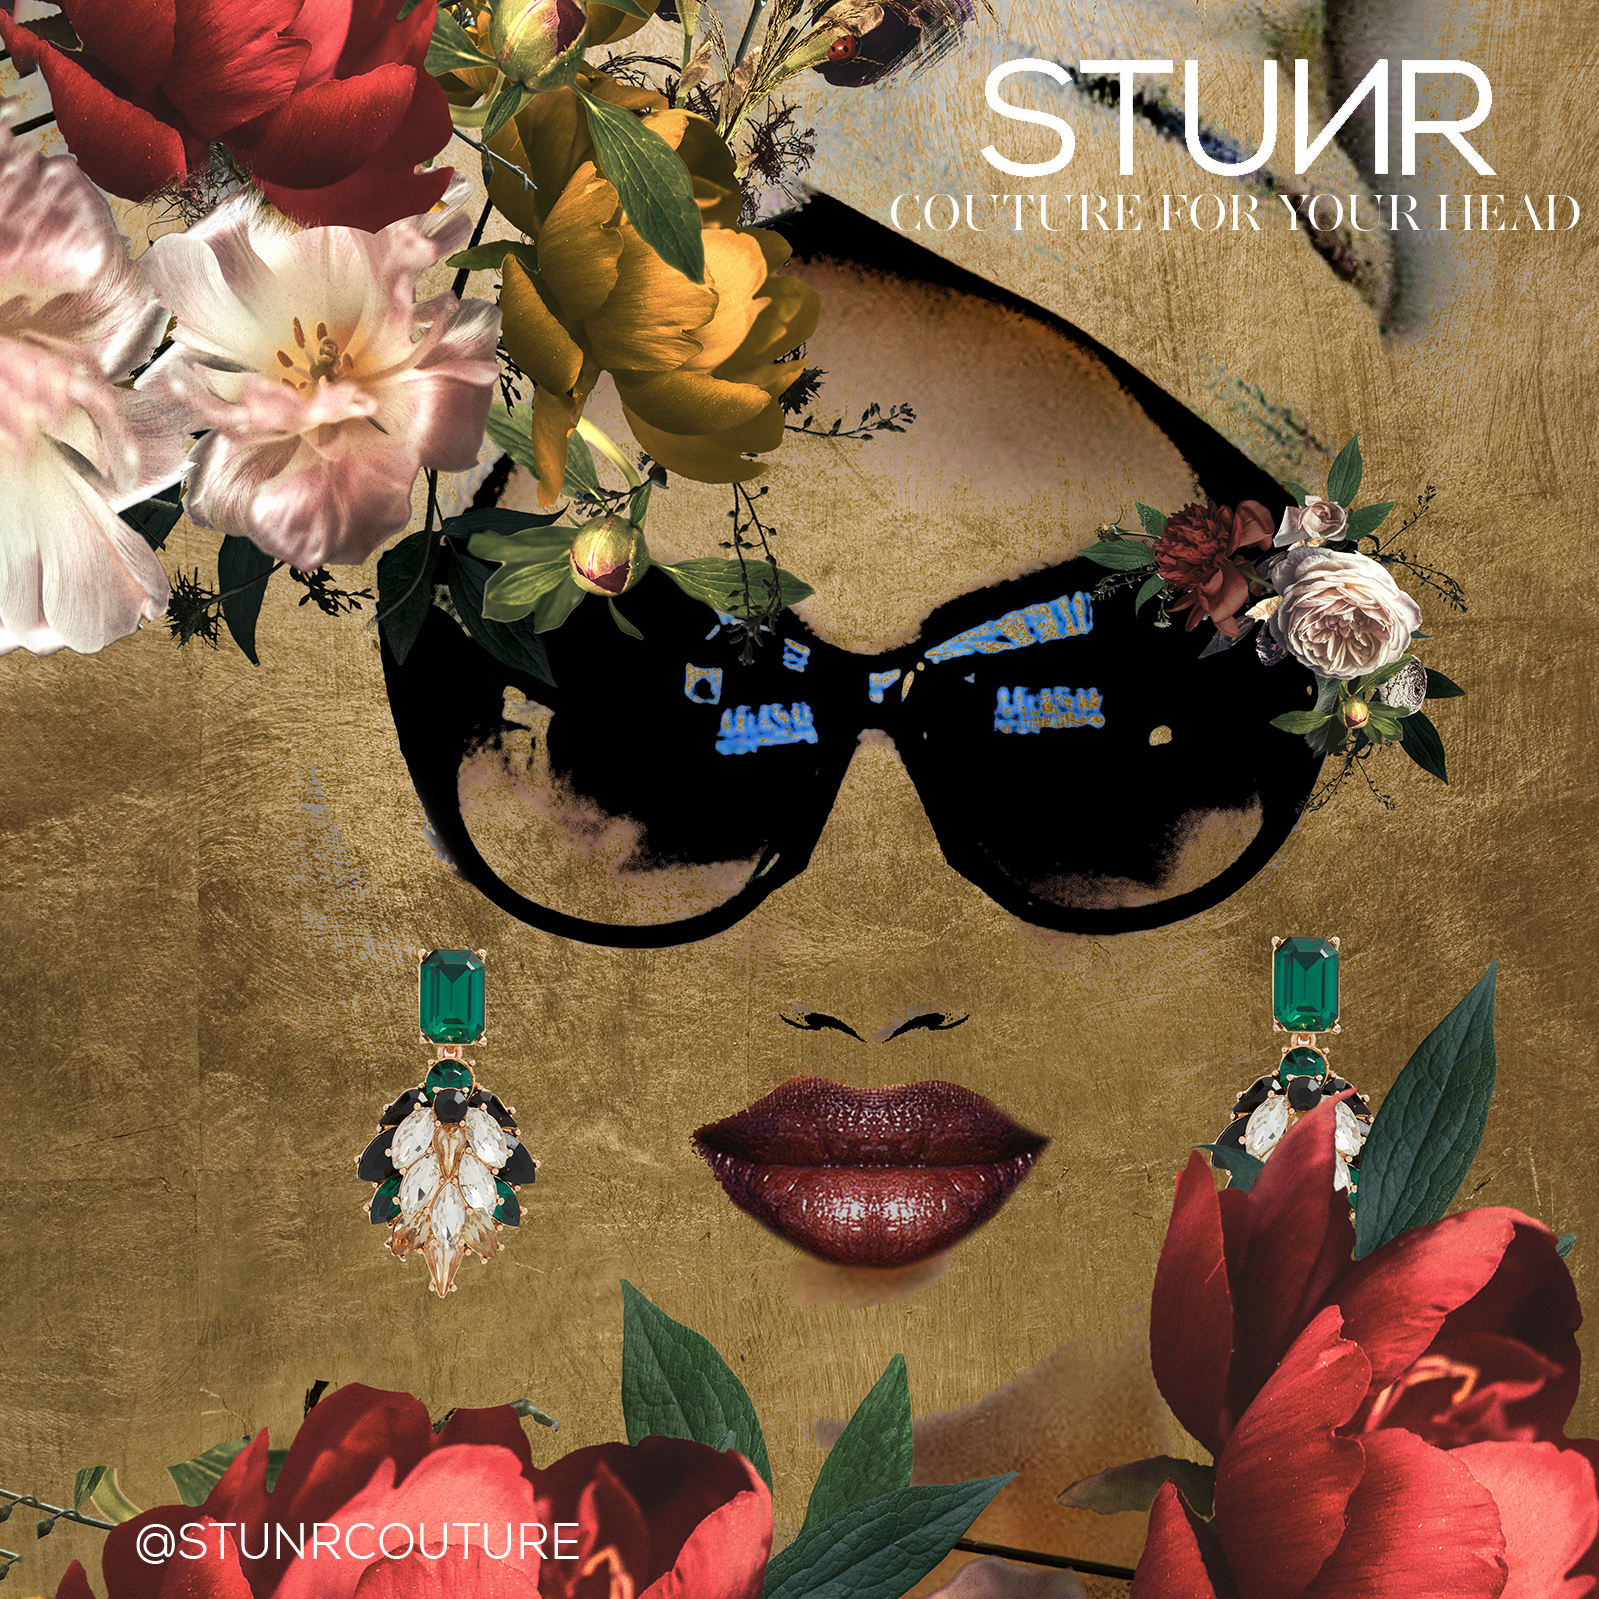 STUNR - stunrcouture.com/Looking for the perfect statement piece to complete your holiday look? Illuminate every room with one of our glamorous, ready-to-wear turbans.